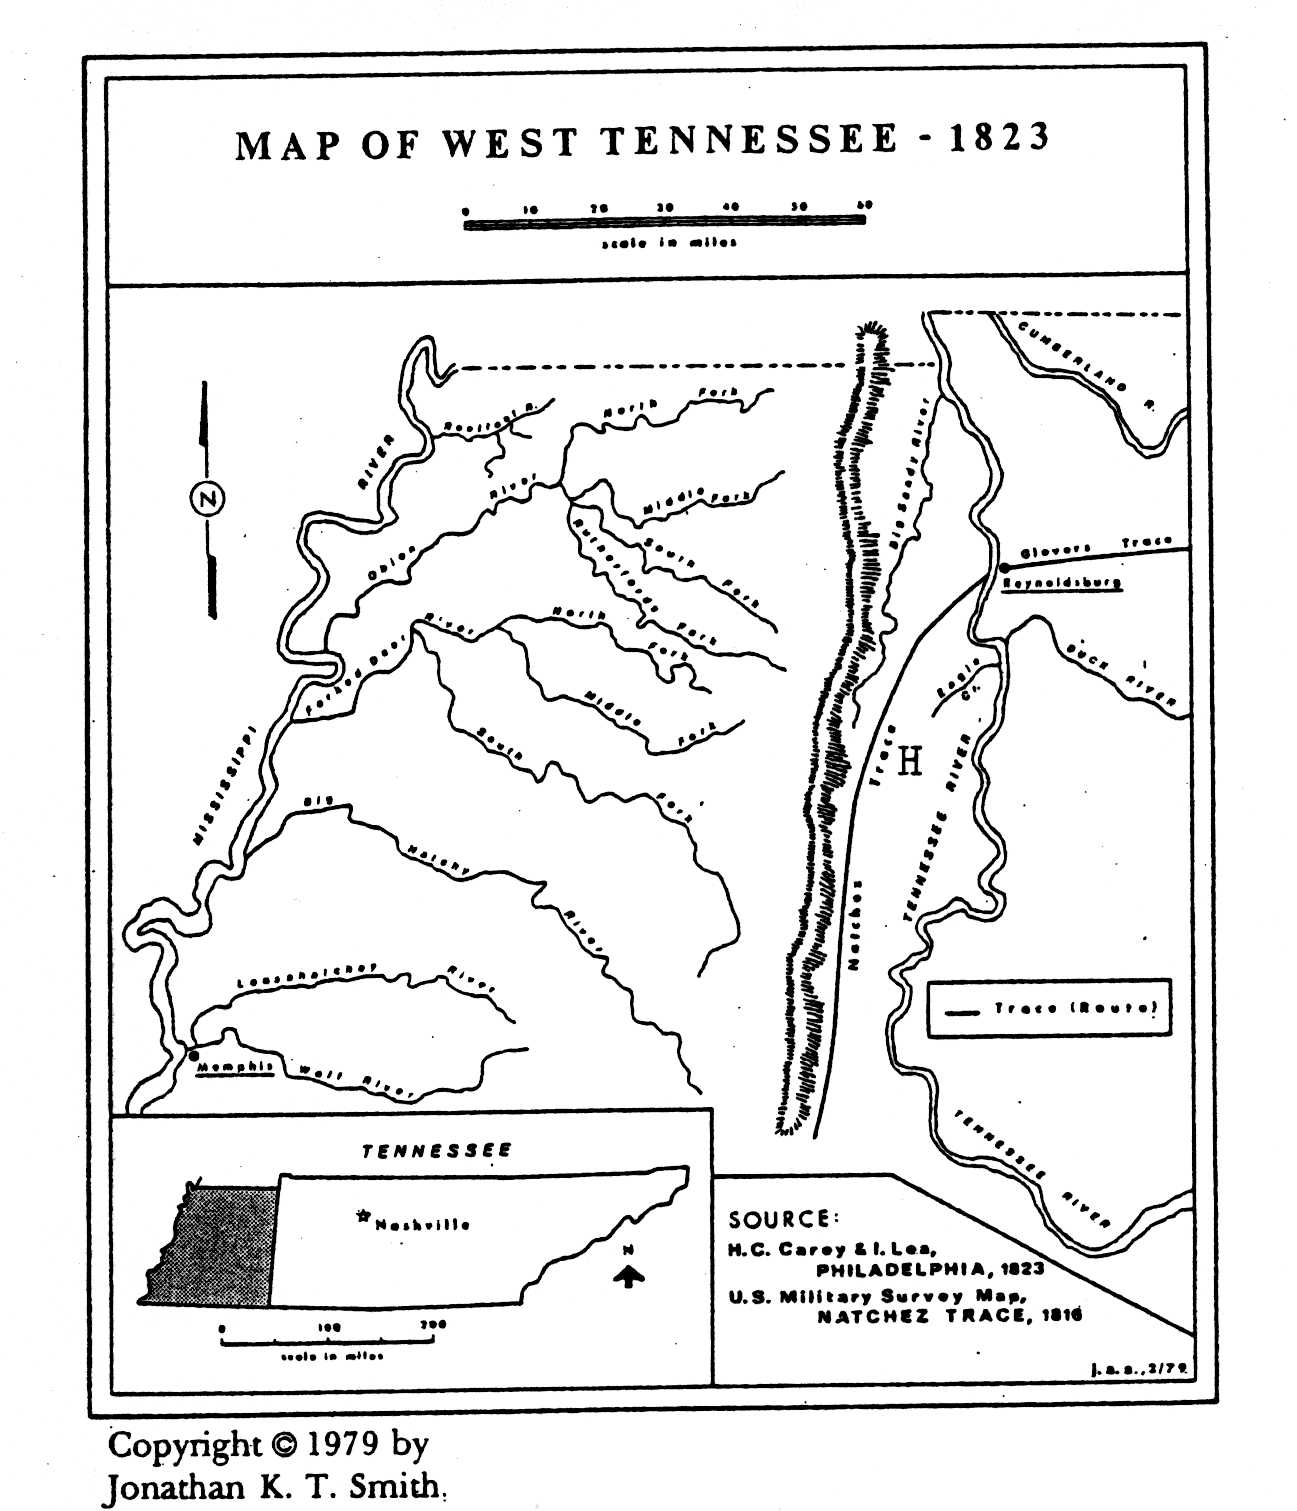 The West Tennessee Natchez Trace